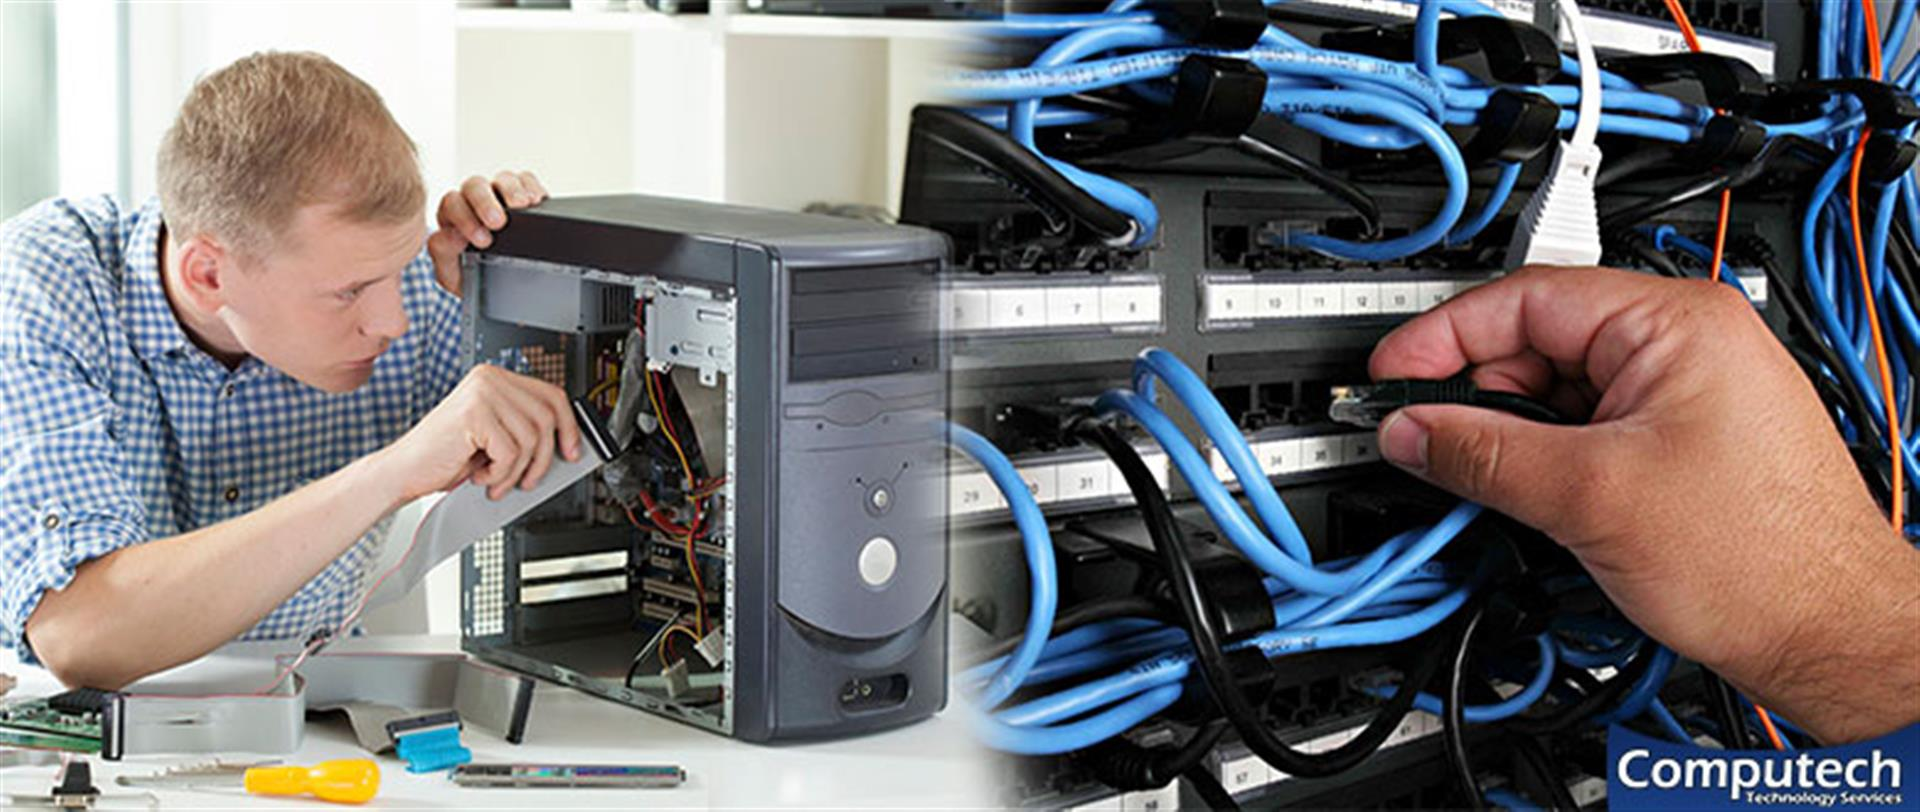 Palmetto Georgia Onsite Computer & Printer Repairs, Network, Voice & Data Cabling Services